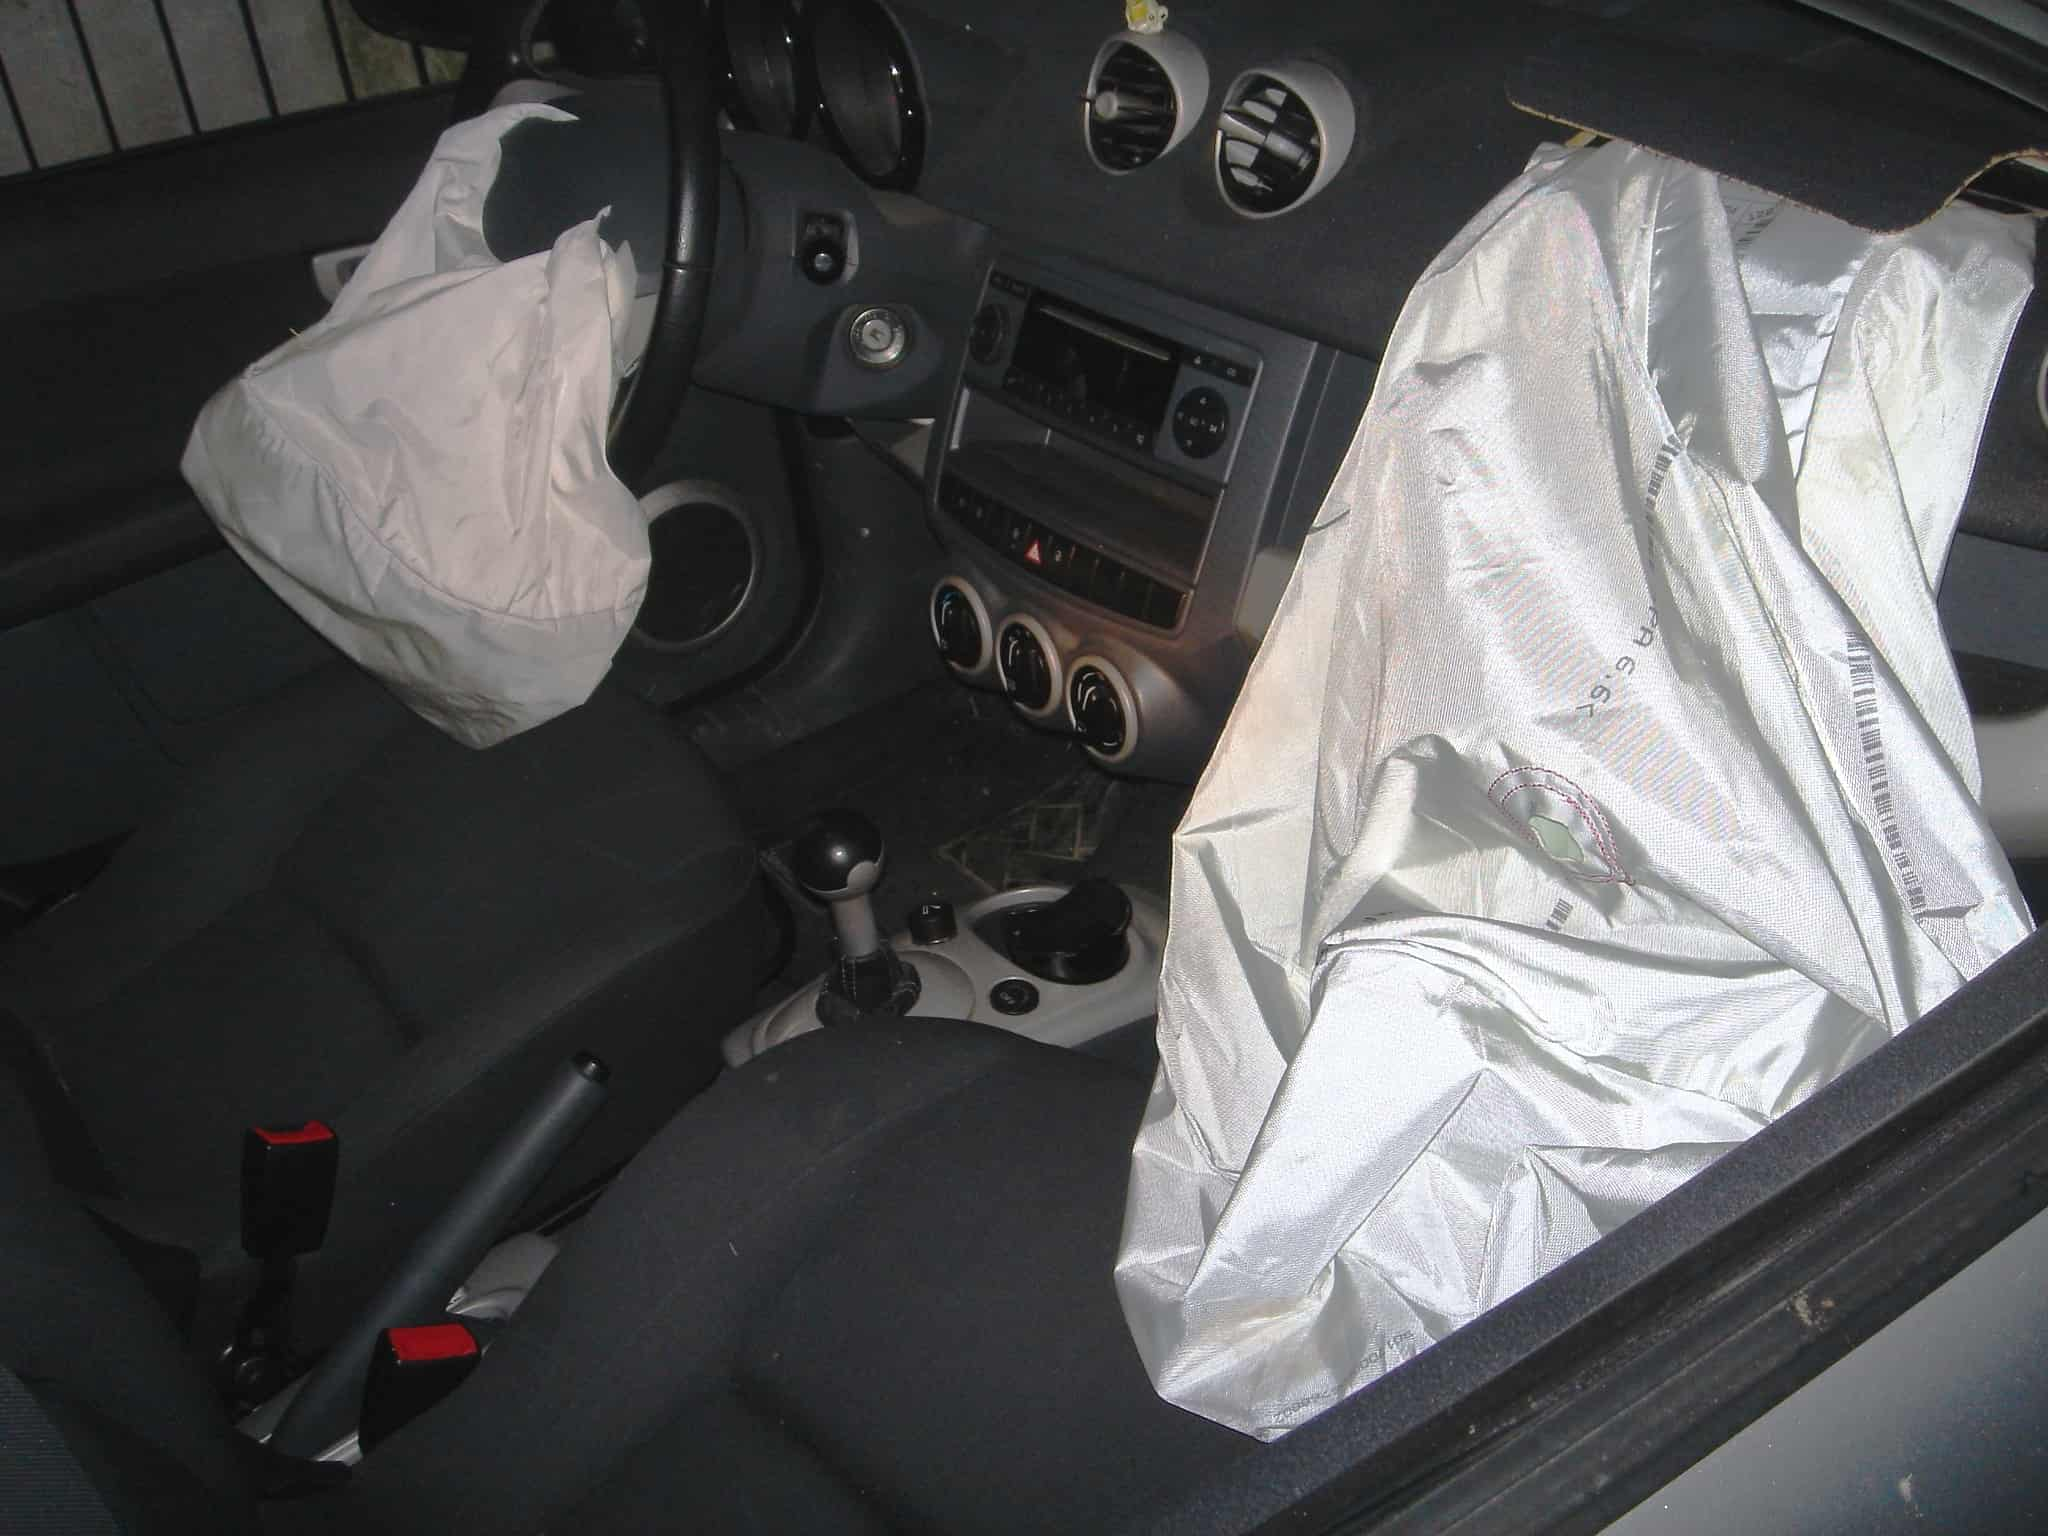 Exploding Airbag Settlement Could Cost Over $1 Billion